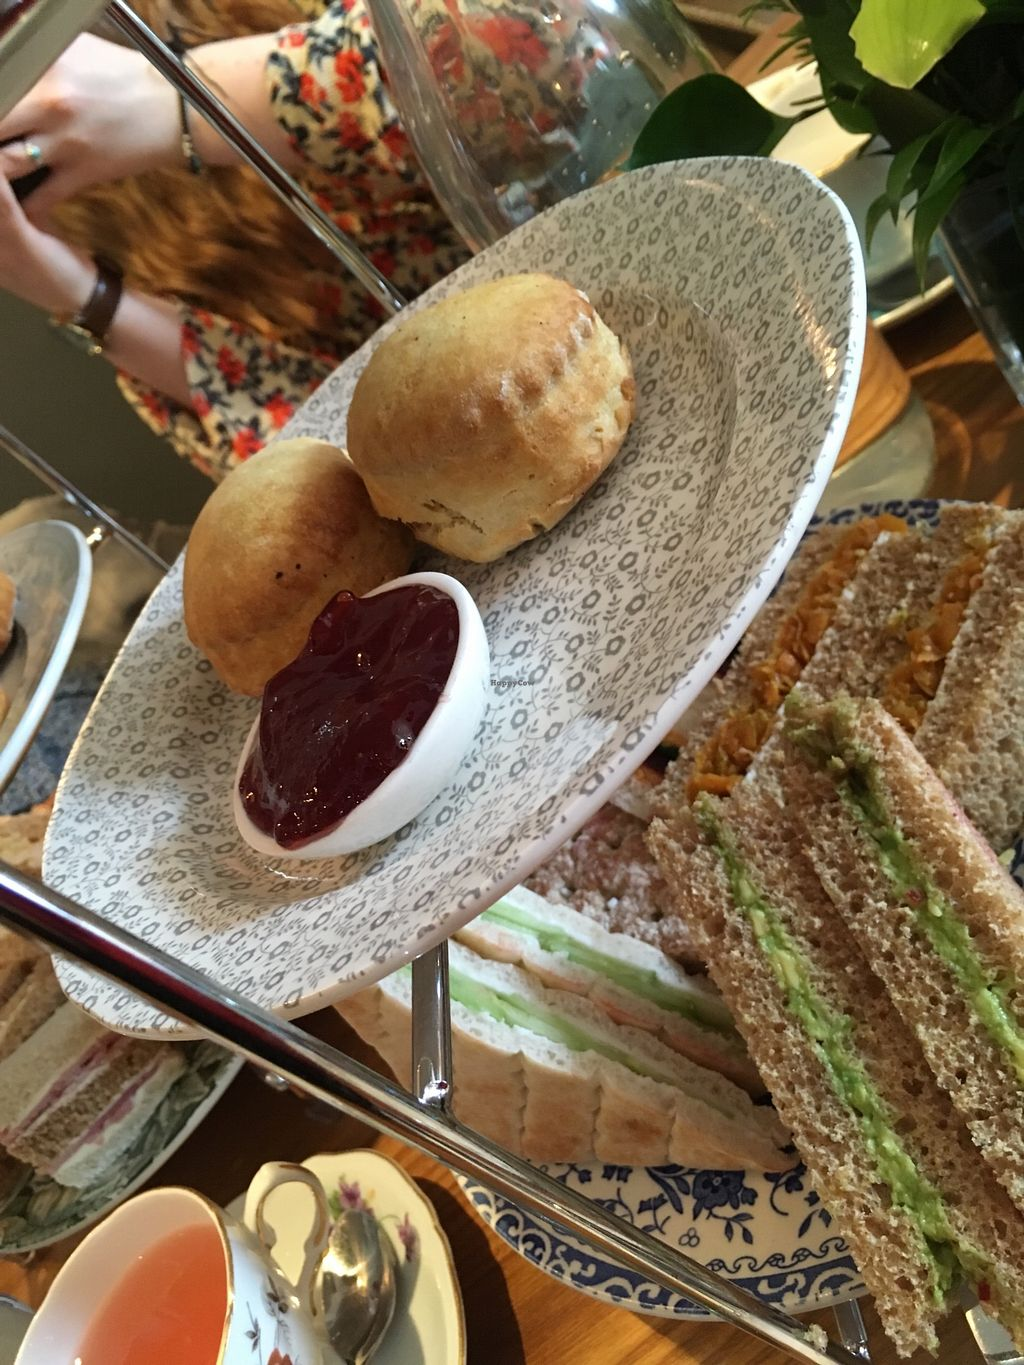 """Photo of 60 Hope Street  by <a href=""""/members/profile/avocado_jess"""">avocado_jess</a> <br/>Vegan scones and jam <br/> March 30, 2018  - <a href='/contact/abuse/image/116231/378173'>Report</a>"""